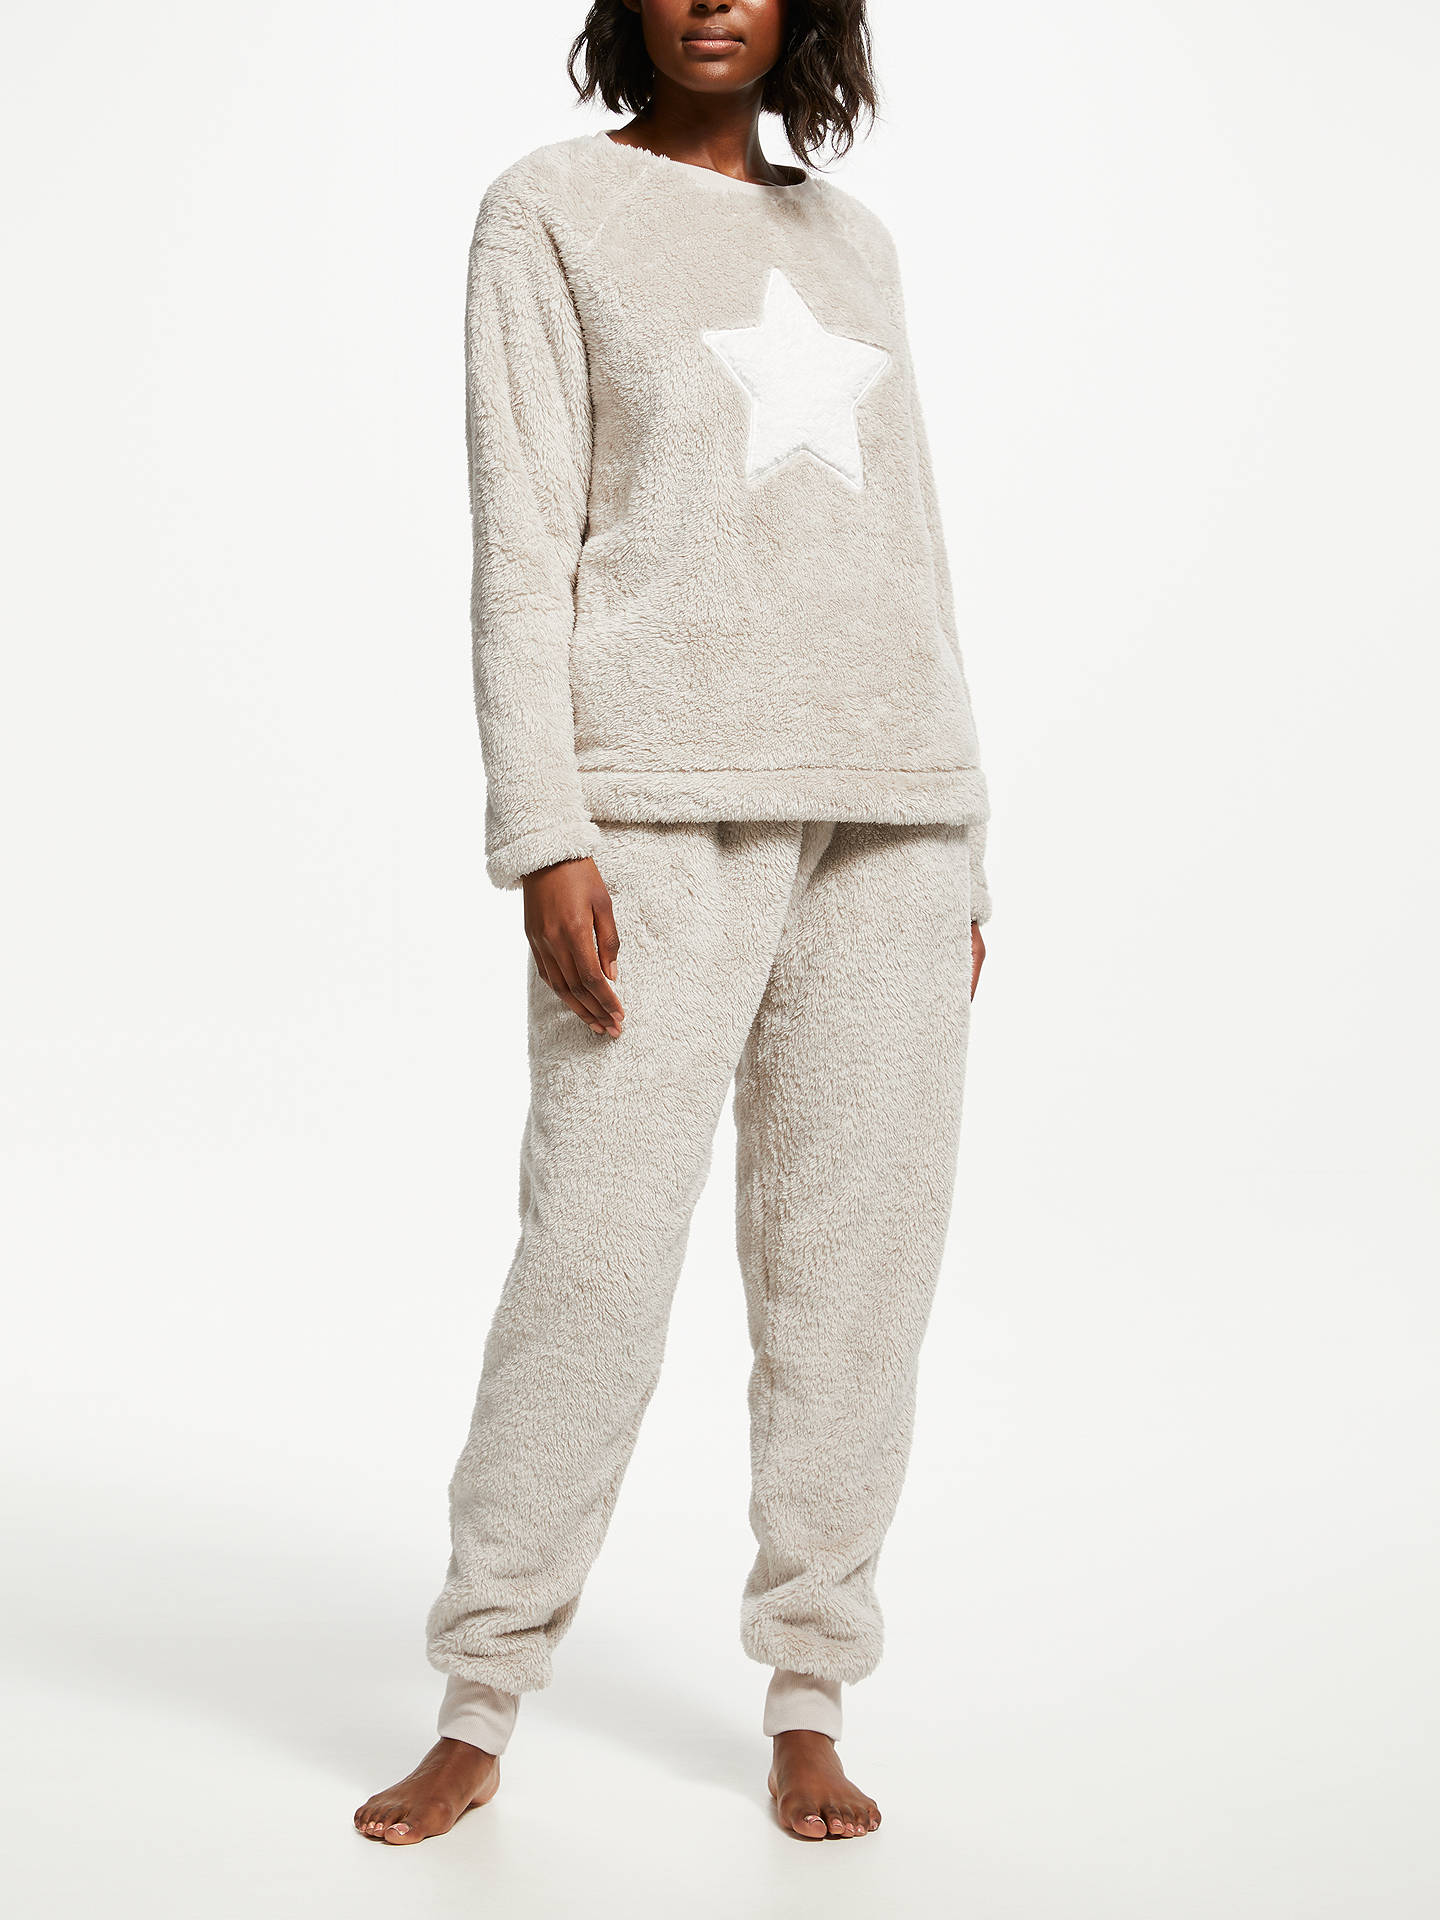 Buy John Lewis & Partners Furry Fleece Star Twosie Pyjama Set, Ivory, S Online at johnlewis.com